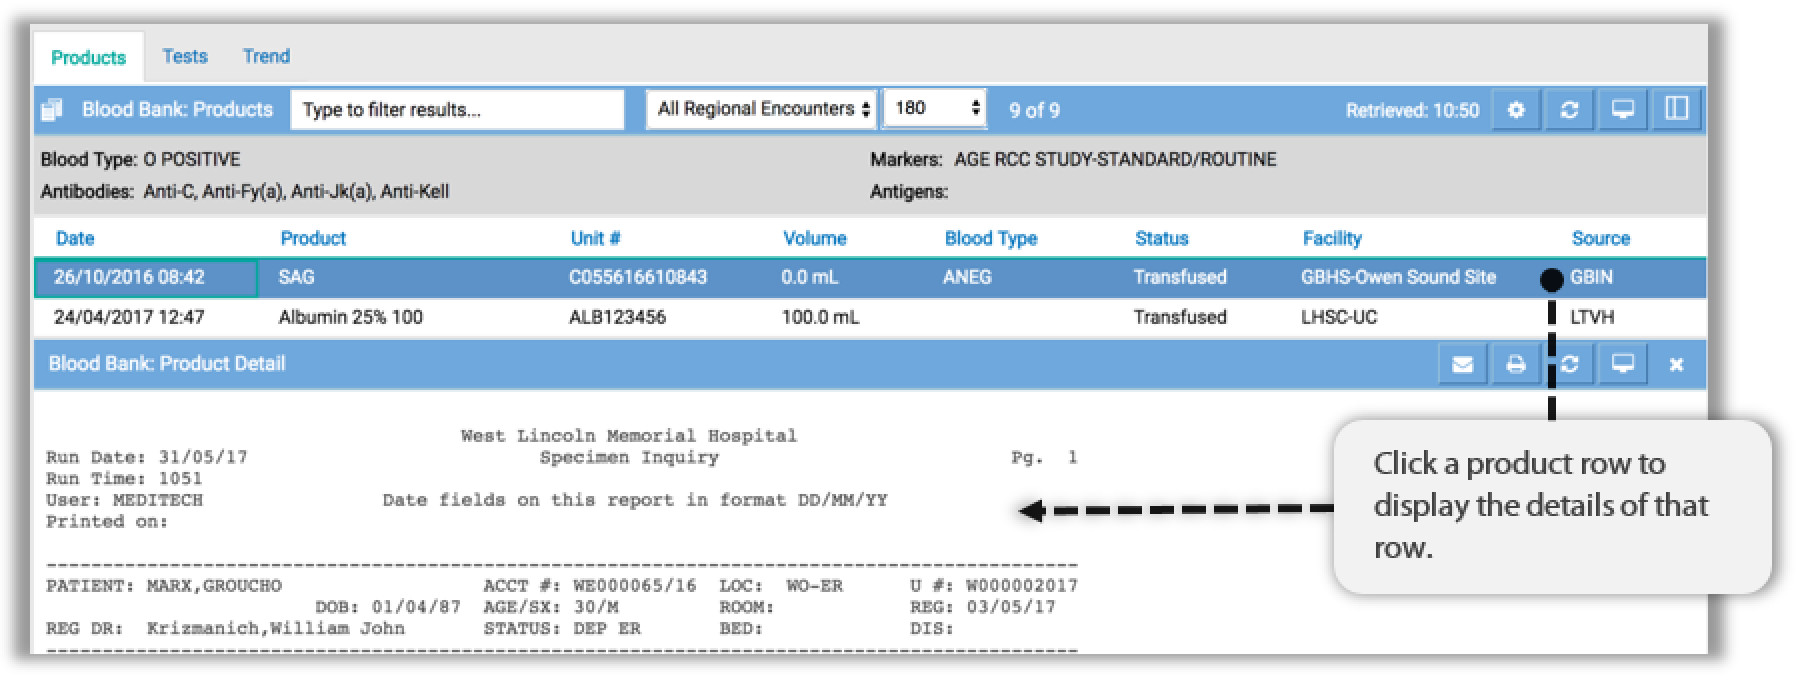 Image of blood bank products tab